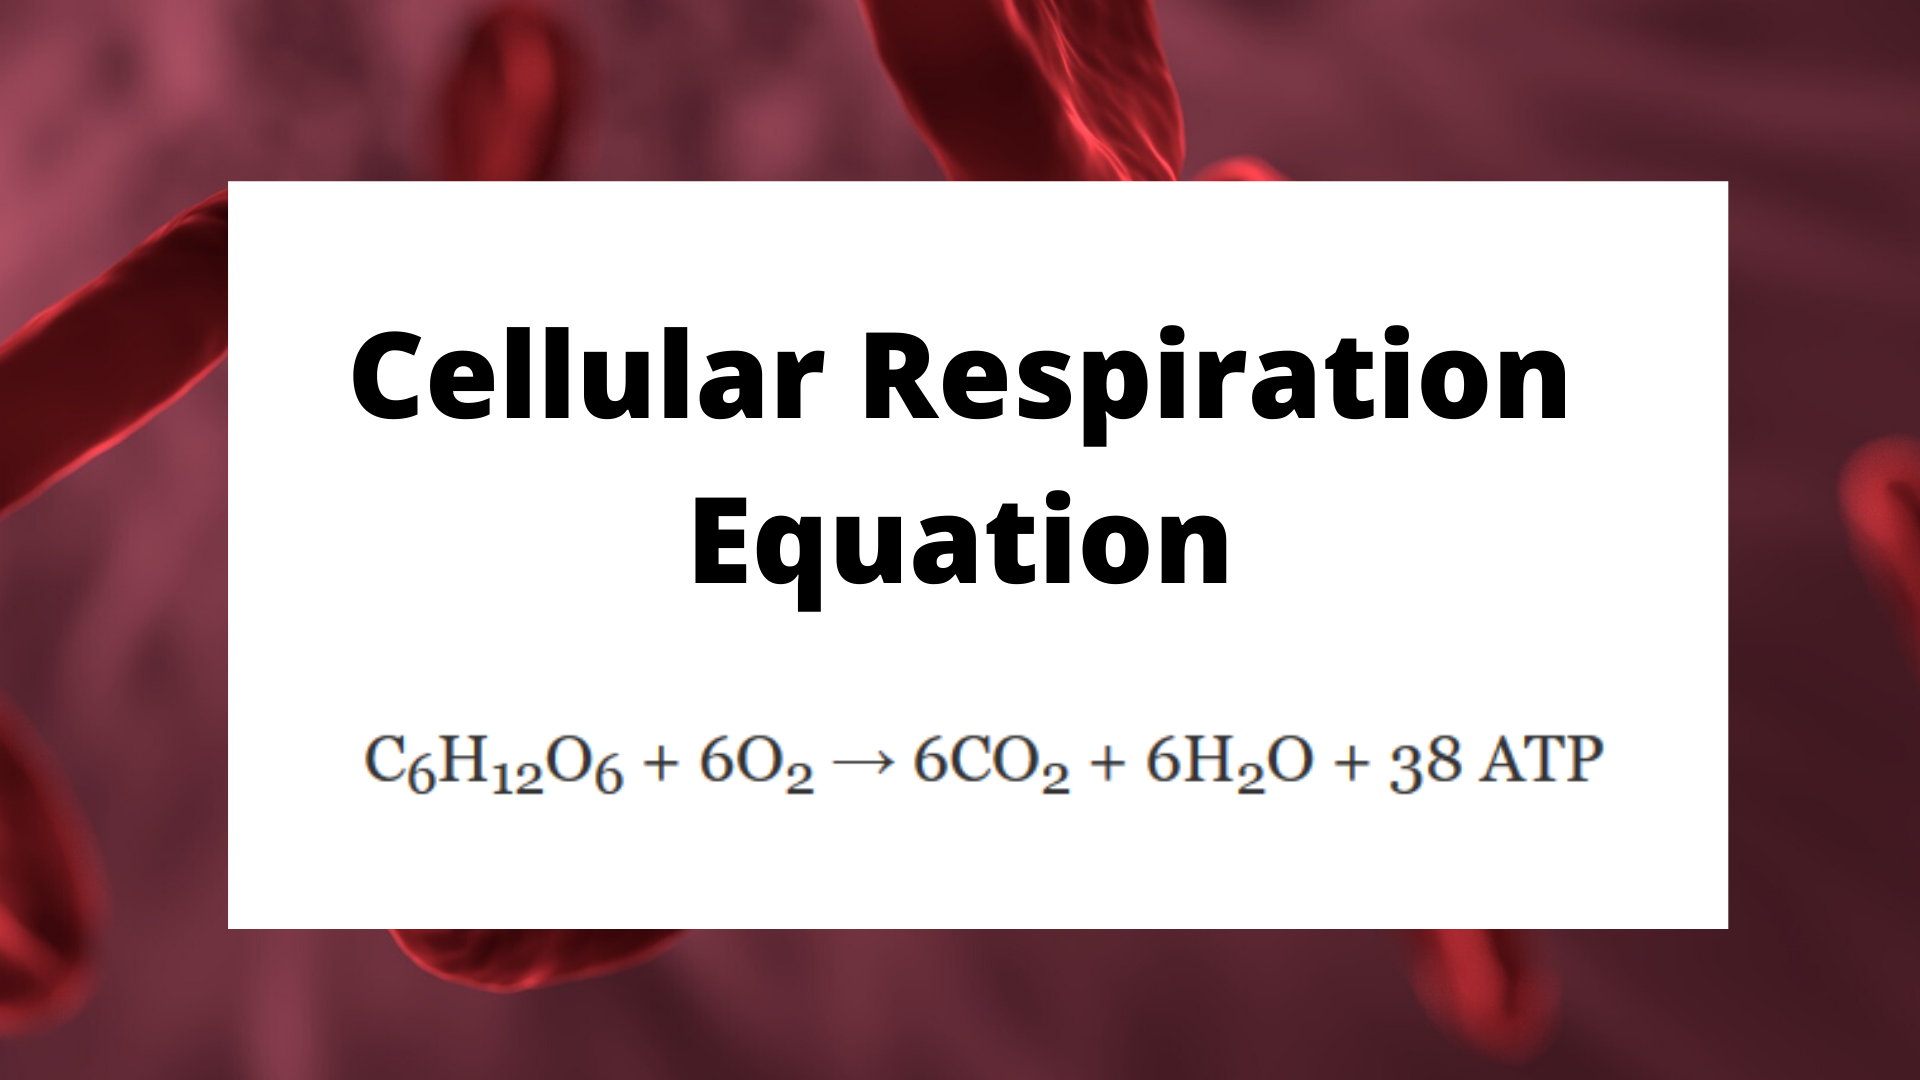 Balanced Chemical Equation For Cellular Respiration Meaning And Function Science Trends